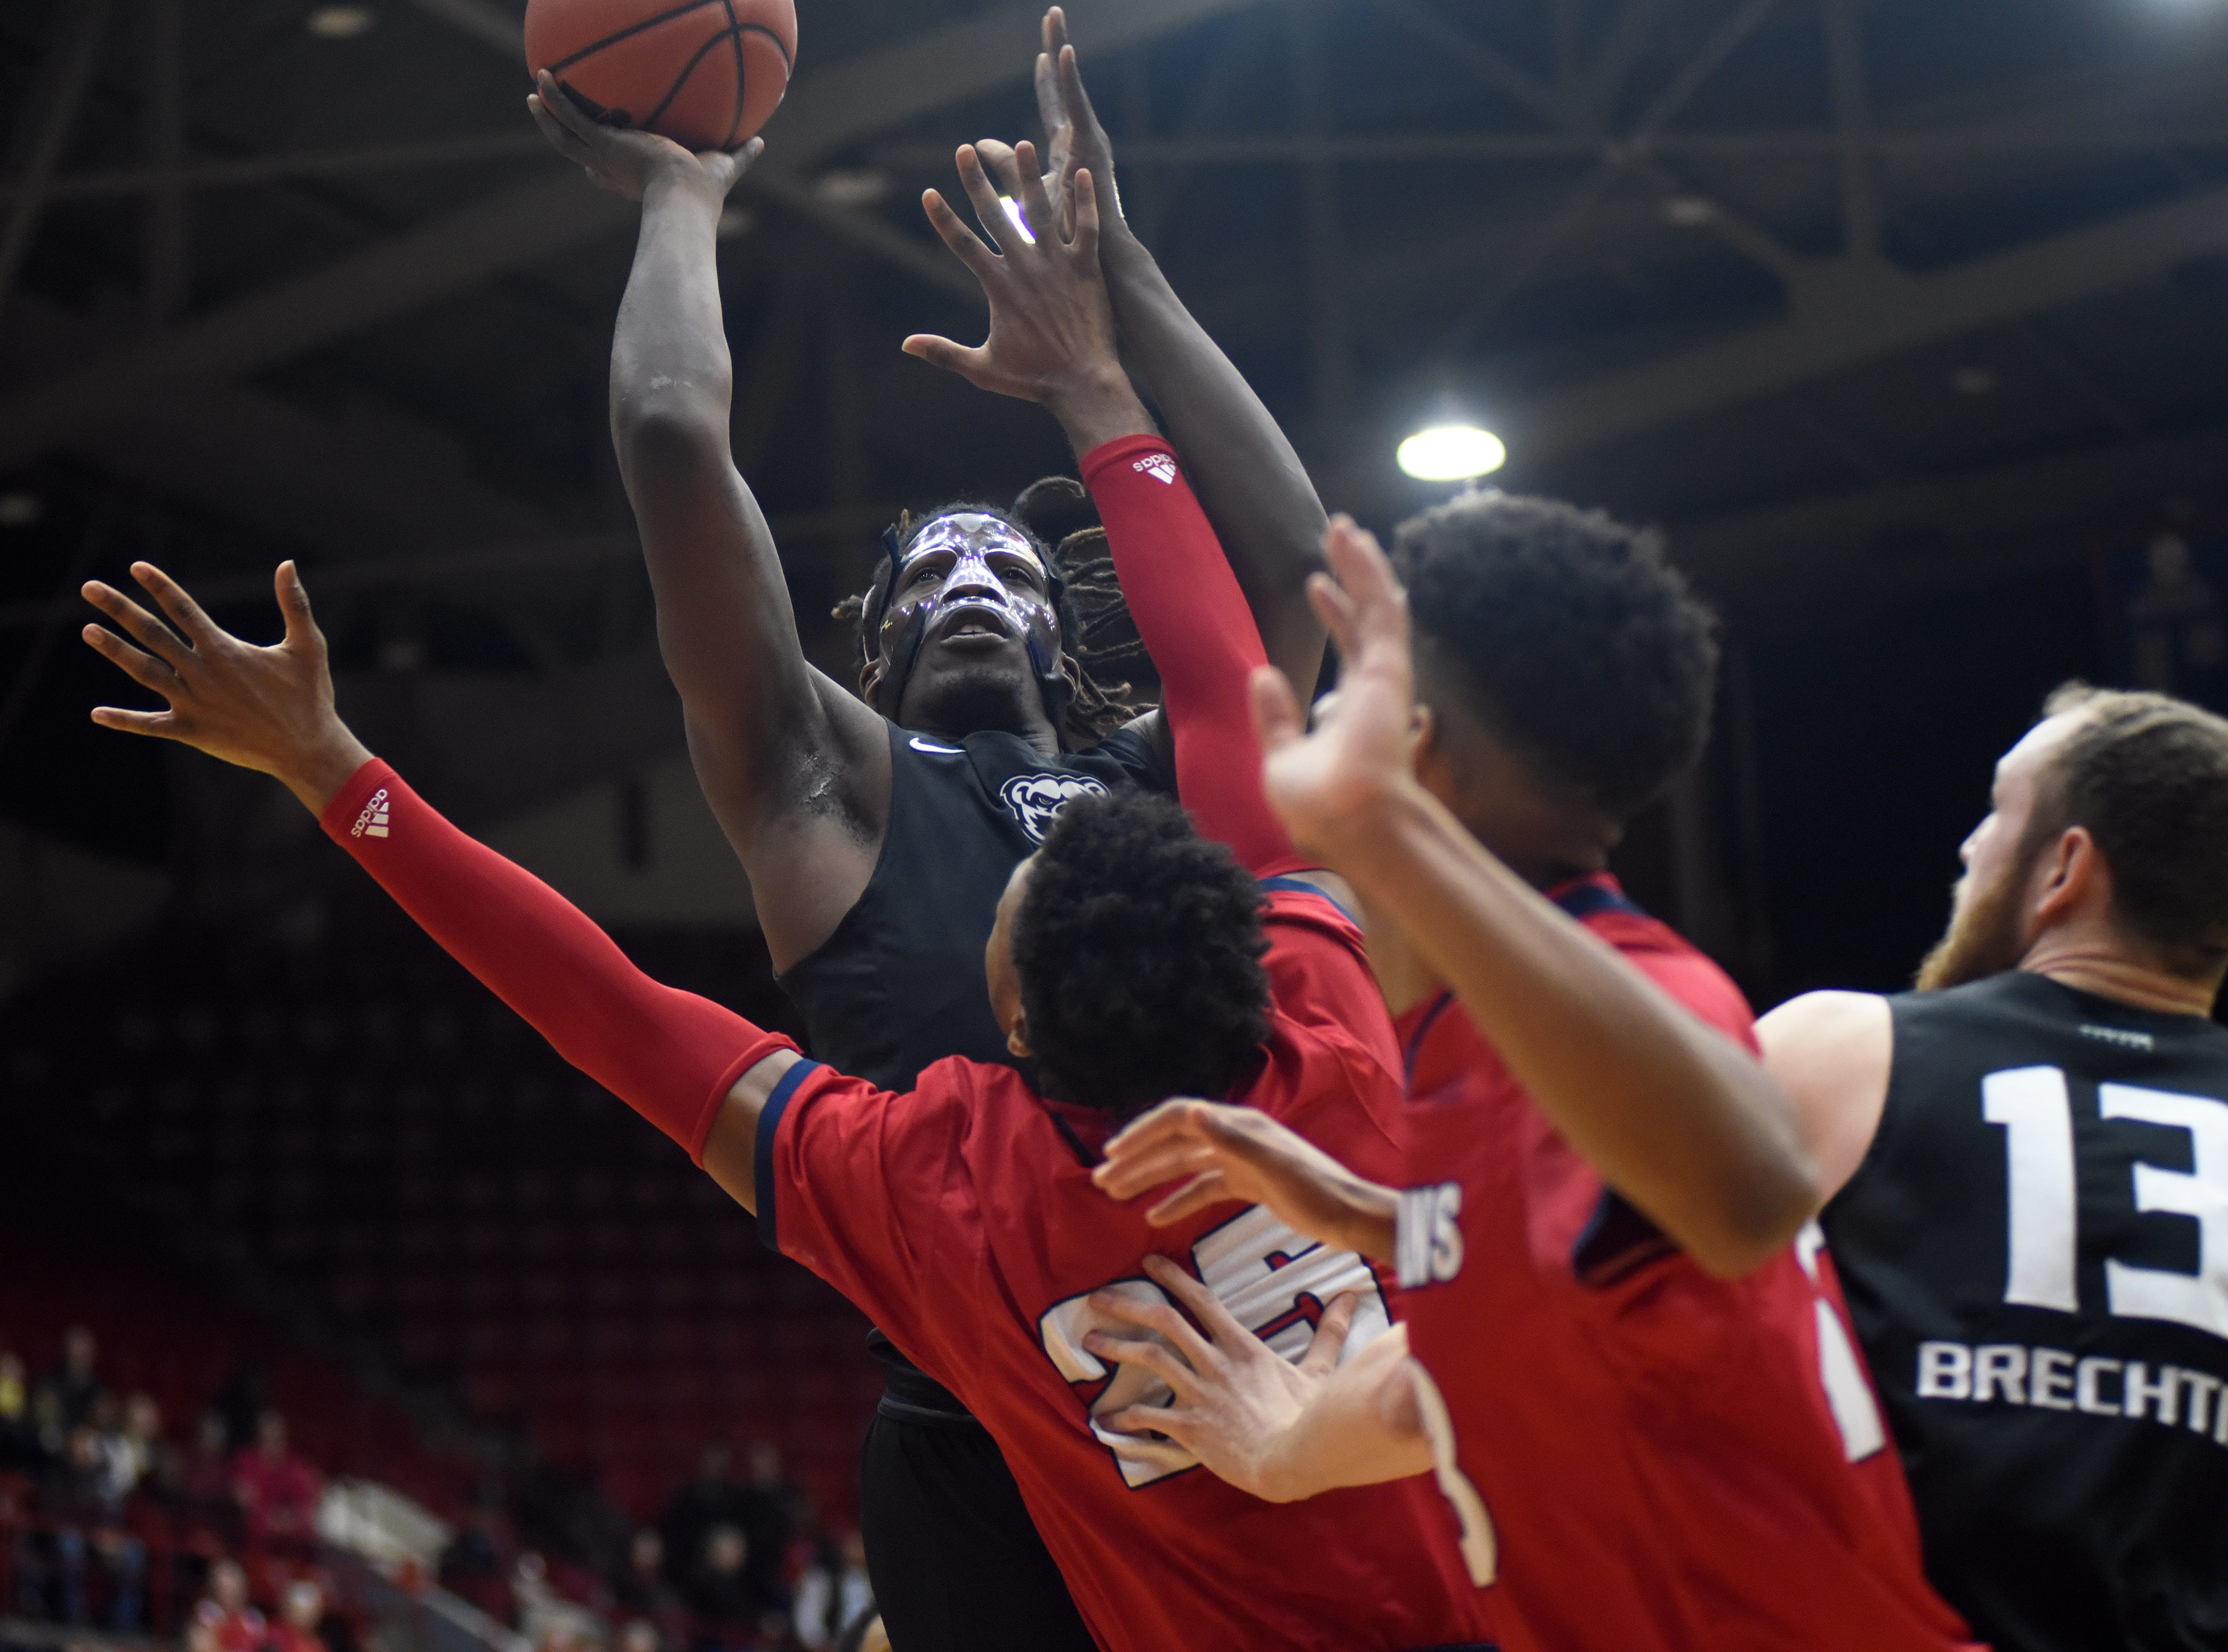 Oakland Golden Grizzlies forward Xavier Hill-Mais (14), top, goes up for a basket against the Detroit Titans in the first half, Saturday, Jan. 19, 2019, at Calihan Hall in Detroit.  (Jose Juarez/Special to Detroit News)